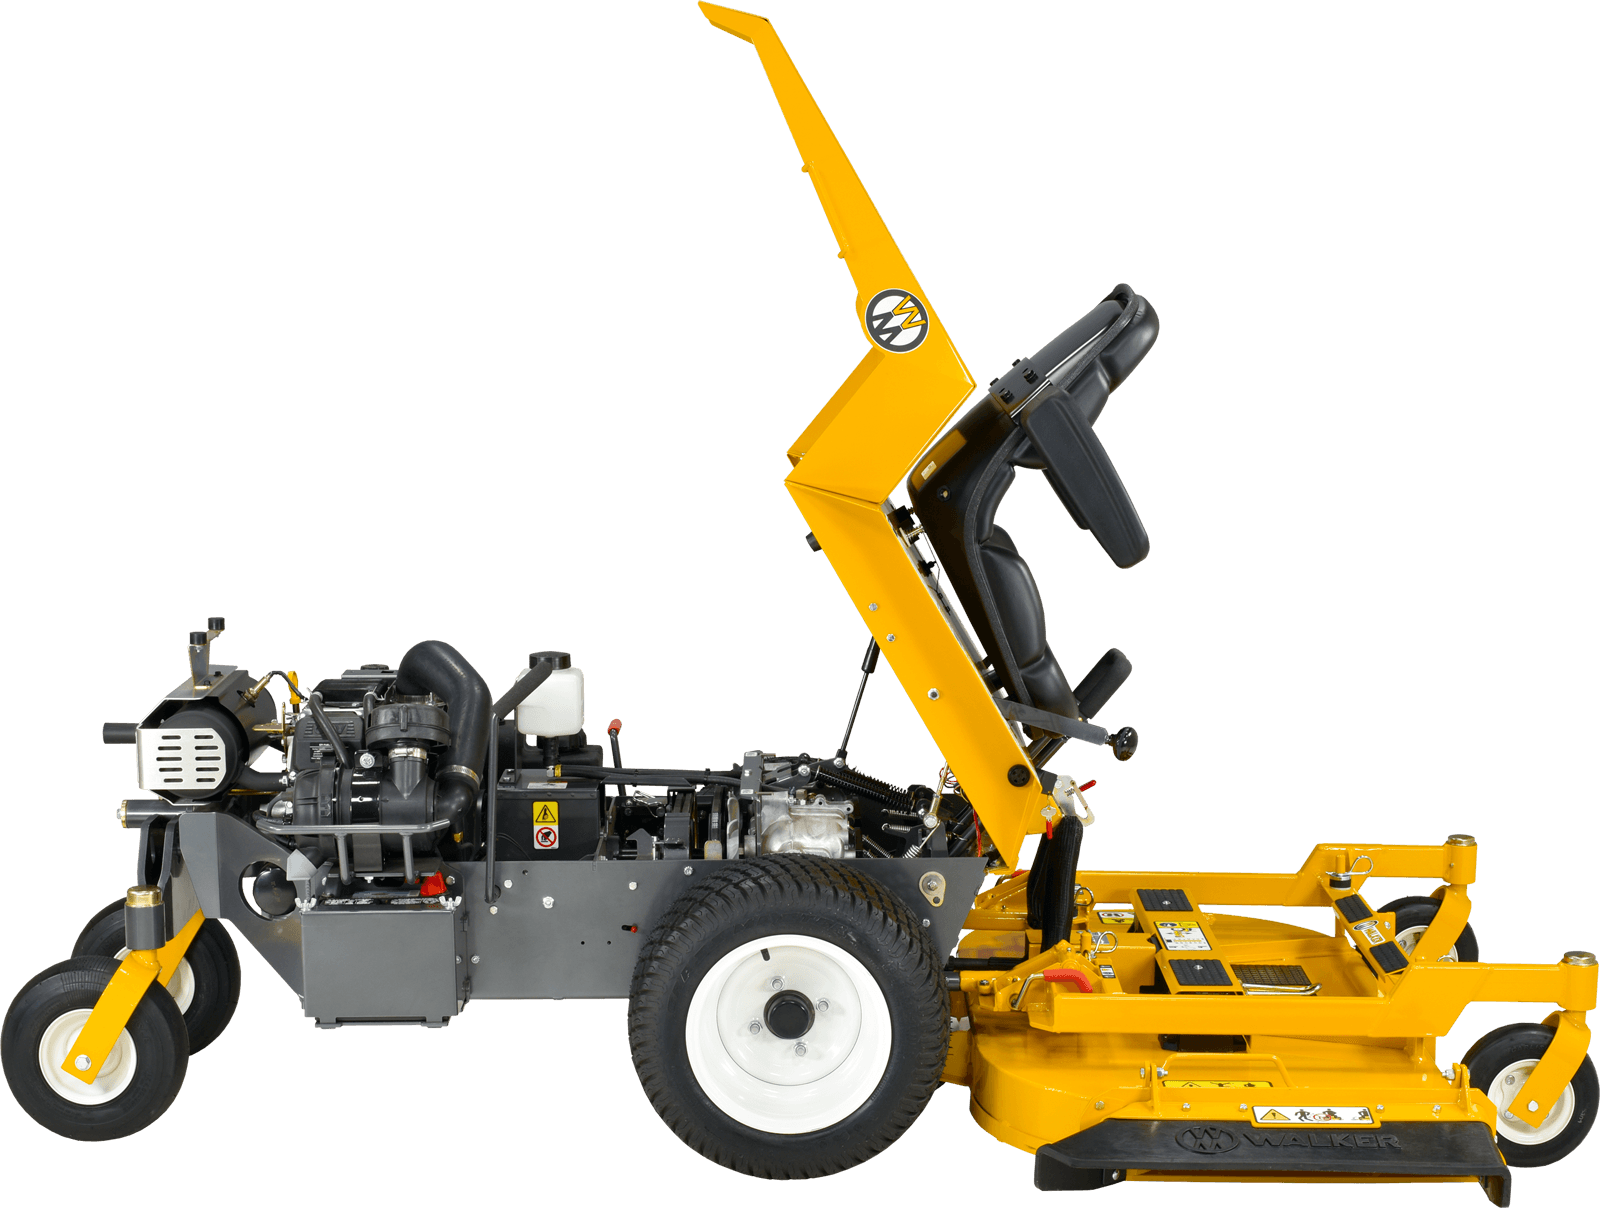 Montana Tractor Parts Lookup : Walker lawn mower engine free image for